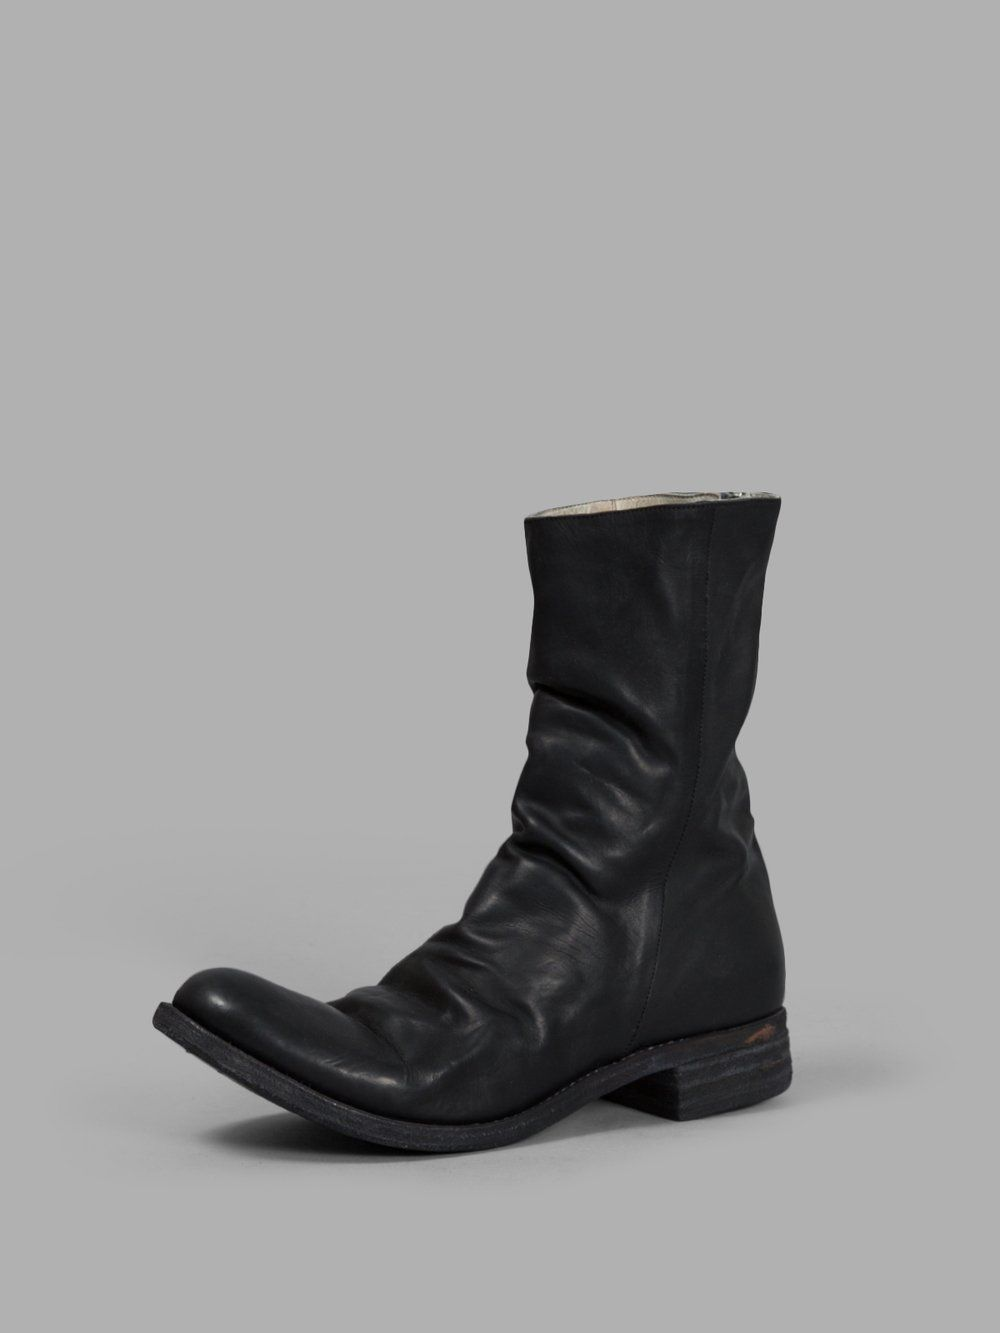 Cases Of Affordable Boots Black A Diciannoveventitre Women Available Now At  our outlet store.Large selection of Boots Black A Diciannoveventitre Women  on ...